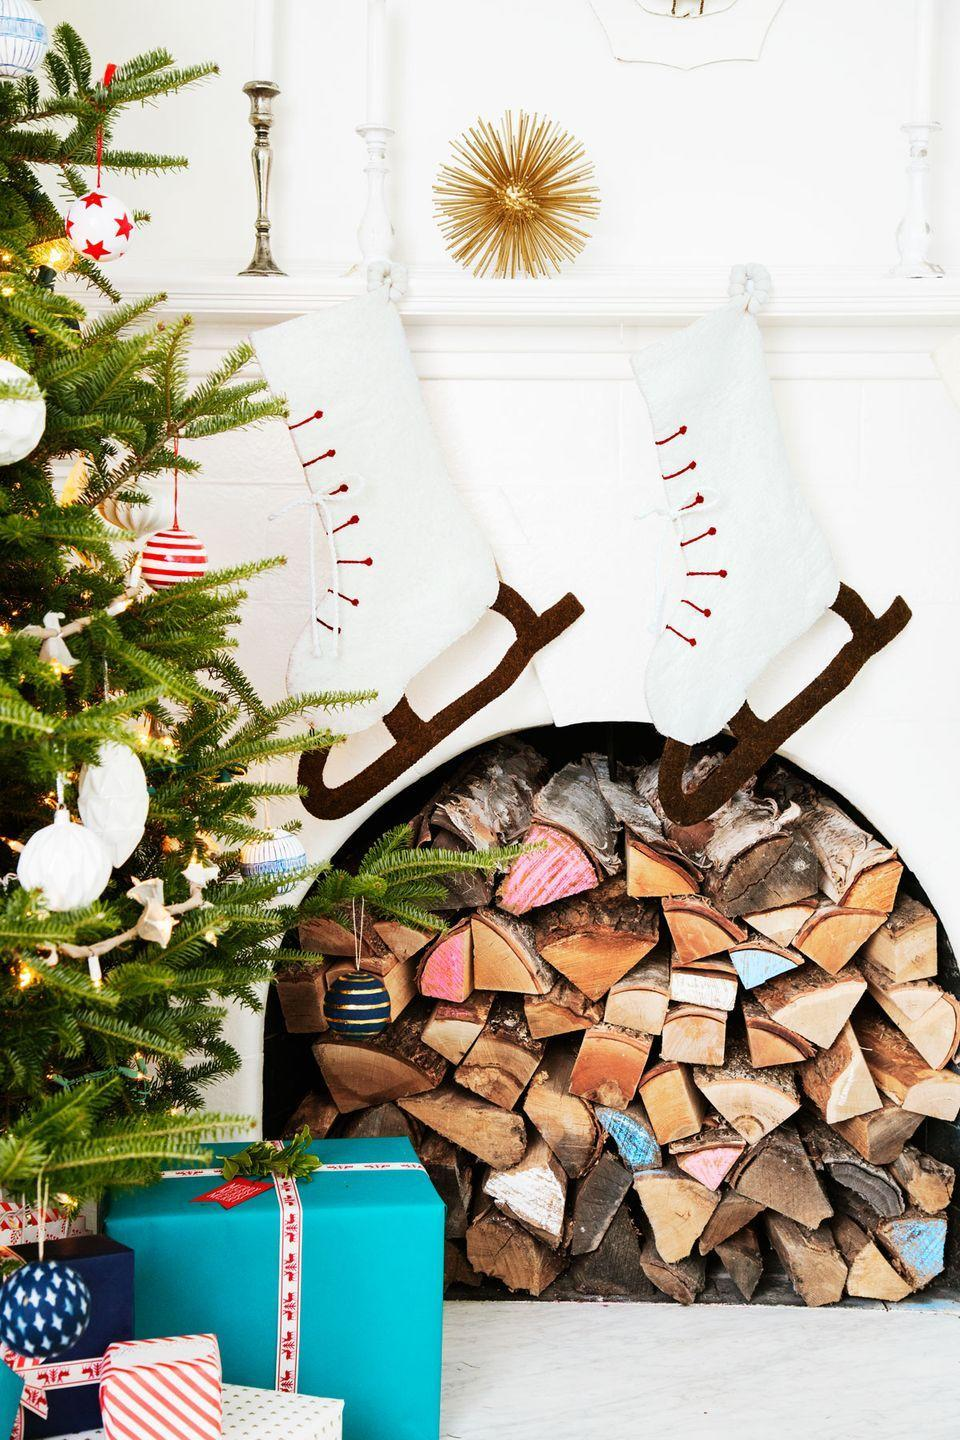 """<p>Filled with split logs (some accented with colorful chalk for extra panache), this non-working fireplace still proves a cozy anchor for this <a href=""""https://www.countryliving.com/home-design/house-tours/g2780/jennaea-gearhart-white-christmas-decor/"""" rel=""""nofollow noopener"""" target=""""_blank"""" data-ylk=""""slk:Tudor house's family room"""" class=""""link rapid-noclick-resp"""">Tudor house's family room</a>.</p><p><a class=""""link rapid-noclick-resp"""" href=""""https://www.amazon.com/Stockings-Holders-Metal-Seasonal-D%C3%A9cor/s?ie=UTF8&page=1&rh=n%3A13744821%2Cp_n_material_browse%3A316589011&tag=syn-yahoo-20&ascsubtag=%5Bartid%7C10050.g.1247%5Bsrc%7Cyahoo-us"""" rel=""""nofollow noopener"""" target=""""_blank"""" data-ylk=""""slk:SHOP STOCKING HOOKS"""">SHOP STOCKING HOOKS</a><br></p>"""